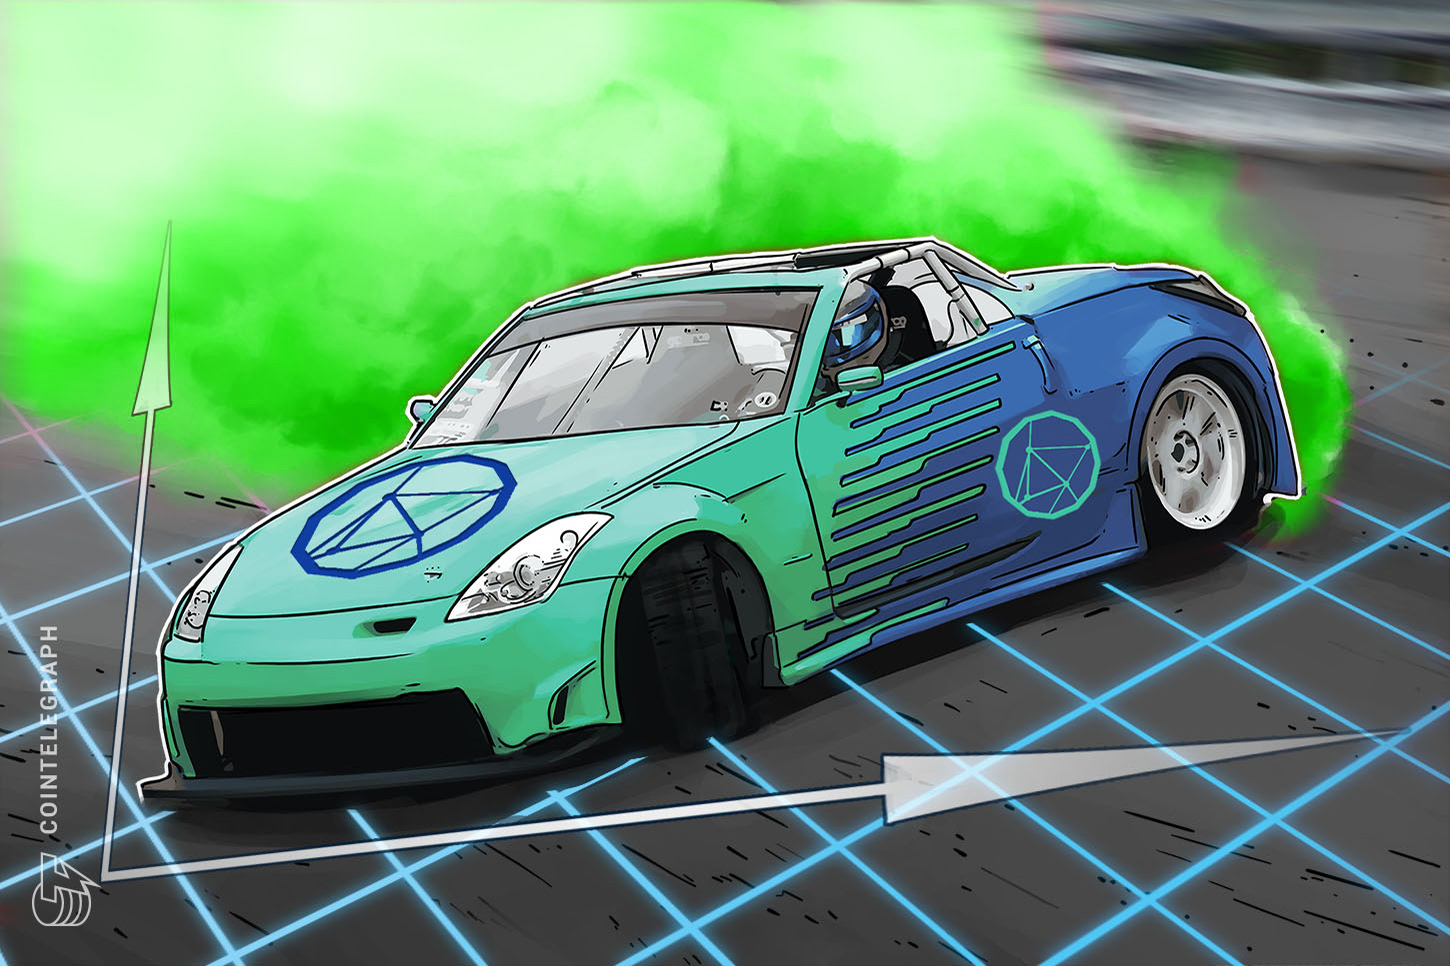 Altcoins soar after Bitcoin price bounces off a key moving average